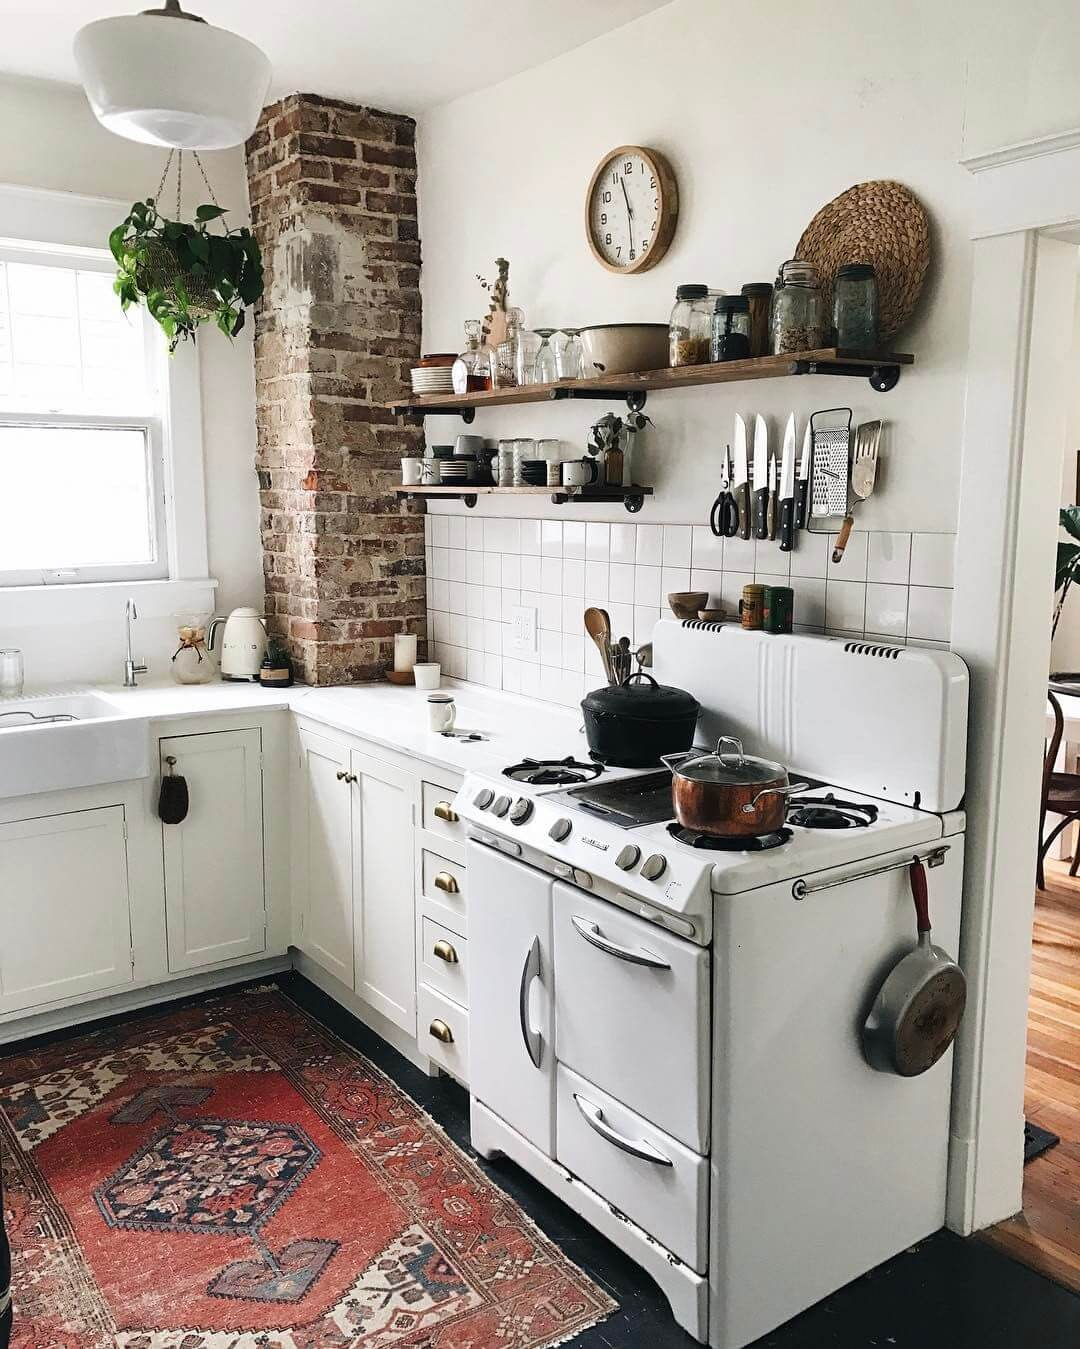 https://homebnc.com/homeimg/2017/09/08-cottage-kitchen-design-decorating-ideas-homebnc.jpg